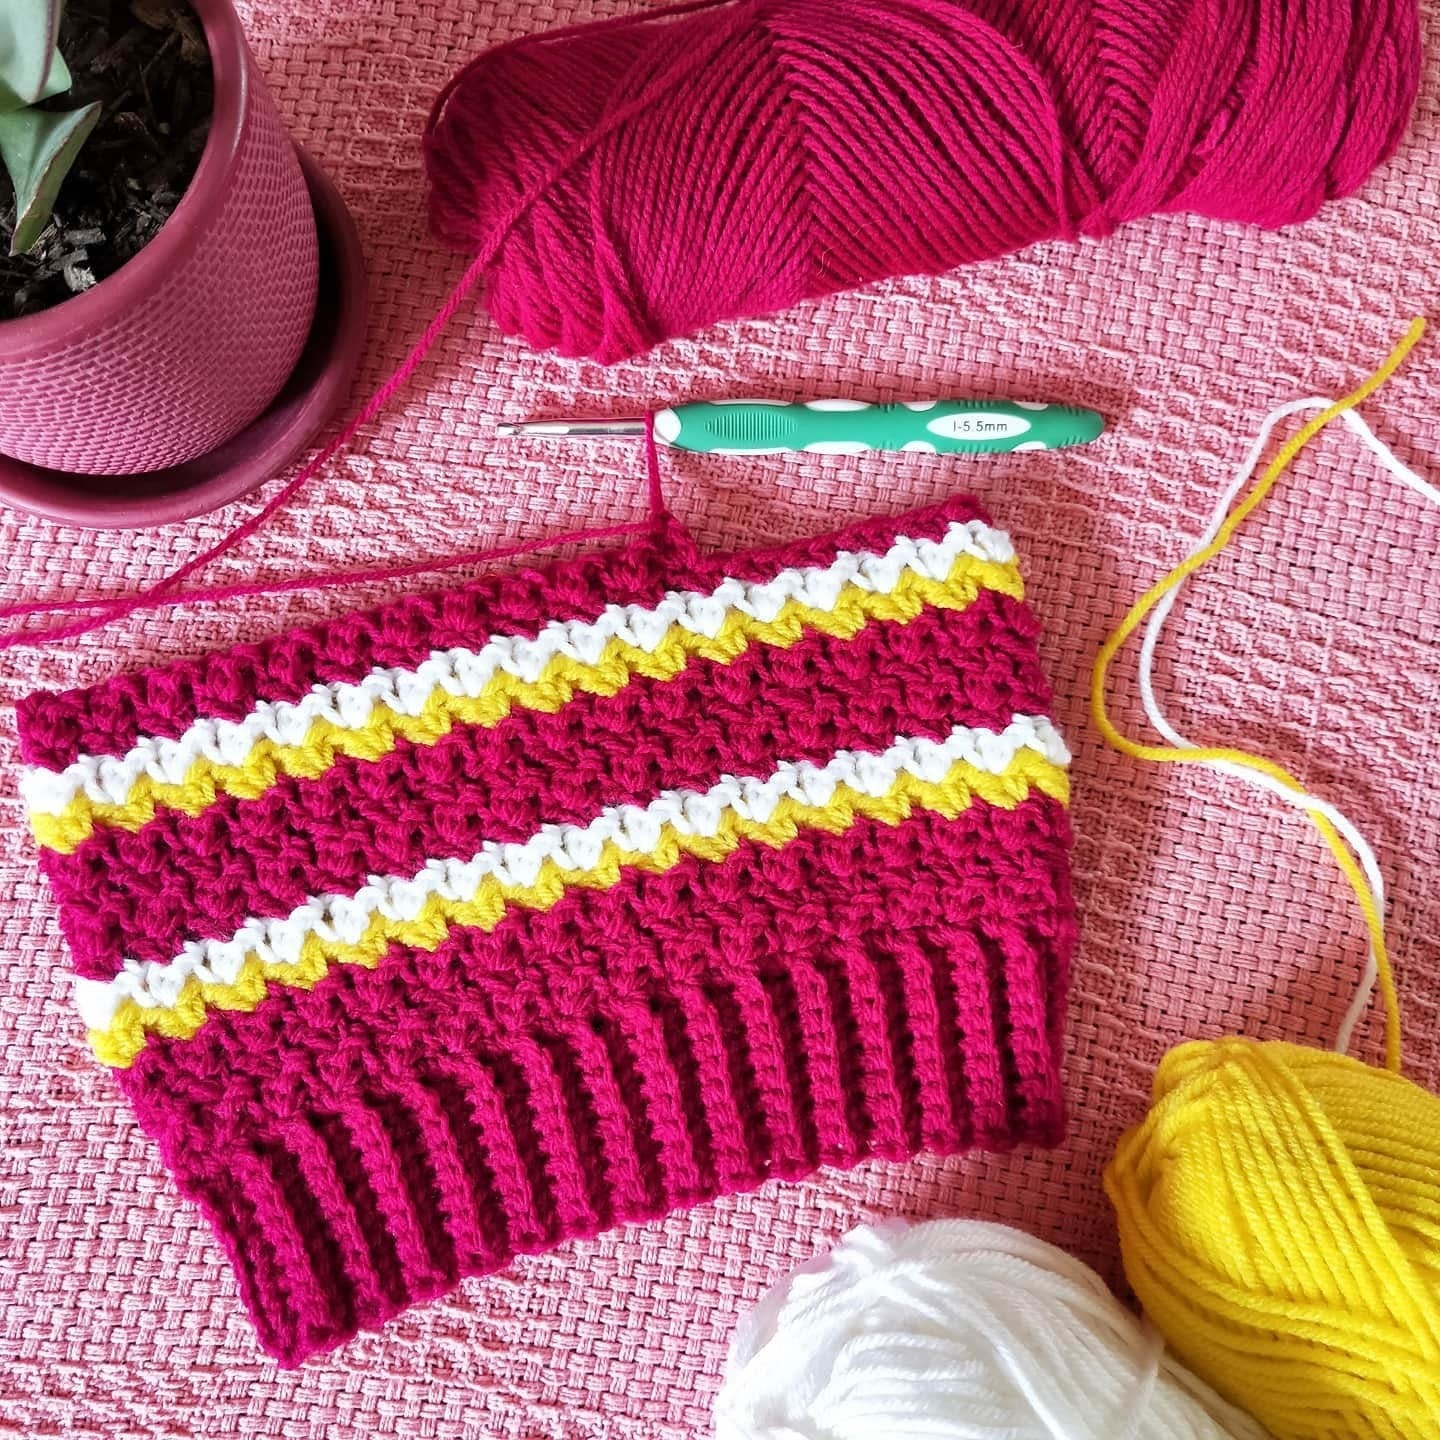 crochet-yarn-knit